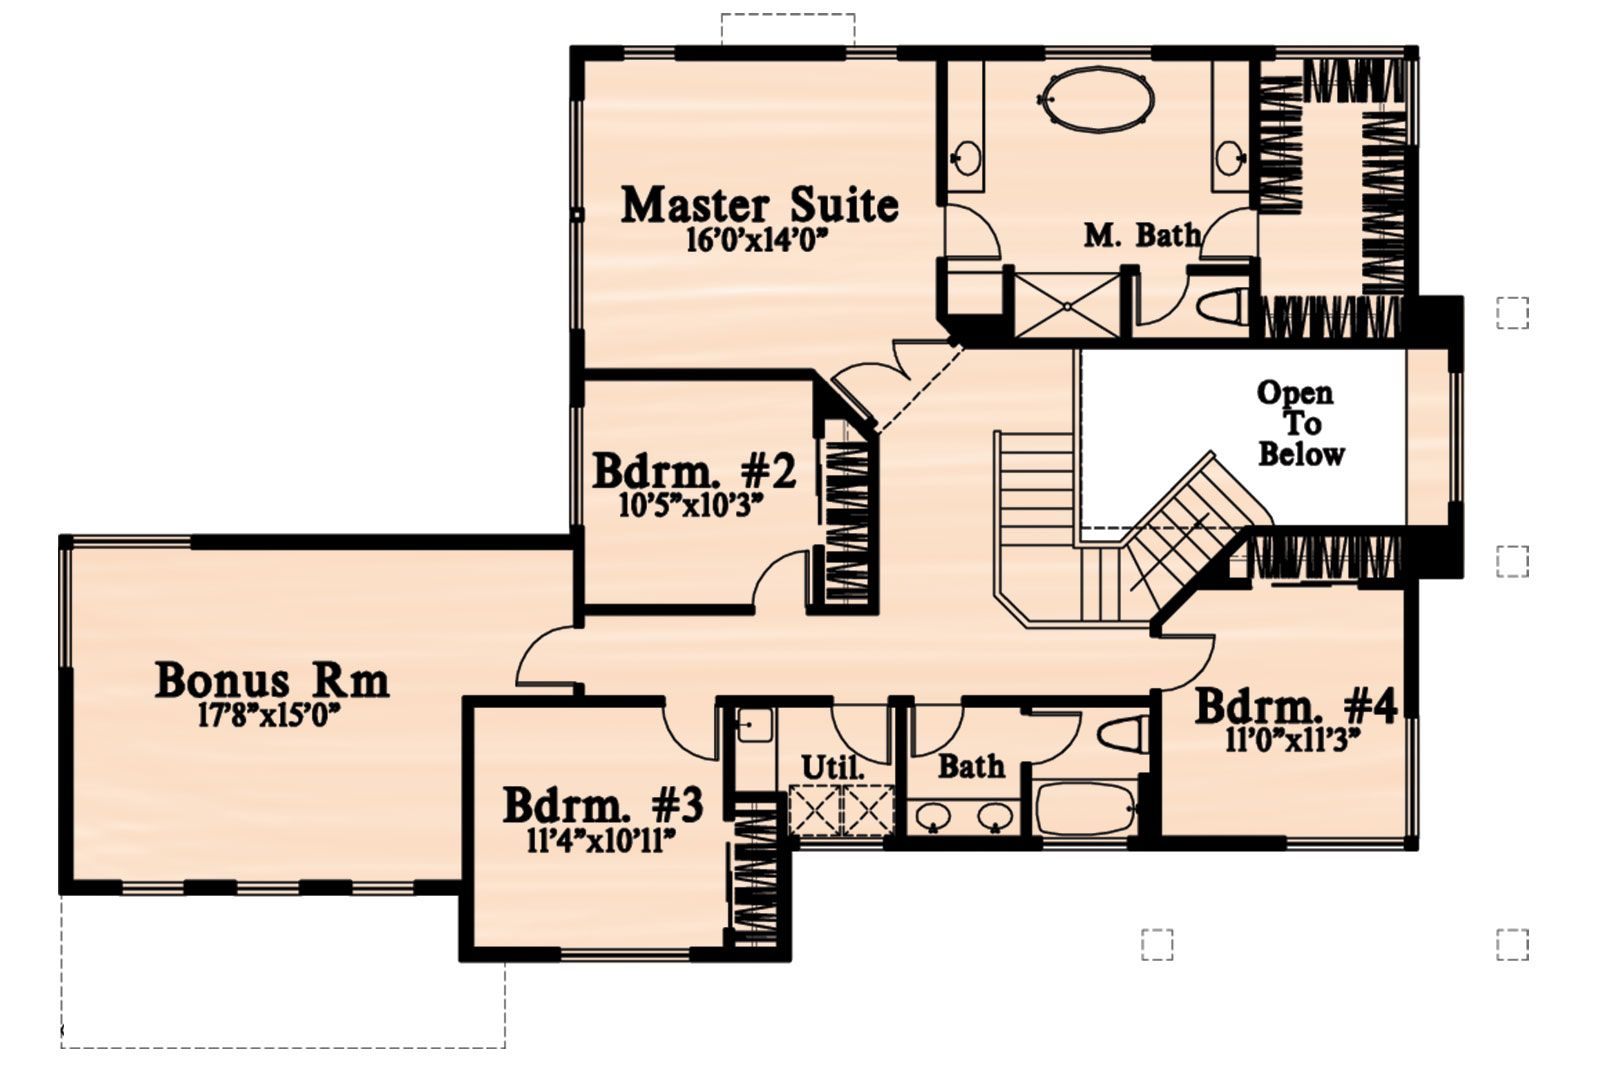 House Plan 4771 00001 Contemporary Plan 3 038 Square Feet 4 Bedrooms 2 5 Bathrooms House Plans Modern House Plans Contemporary House Plans